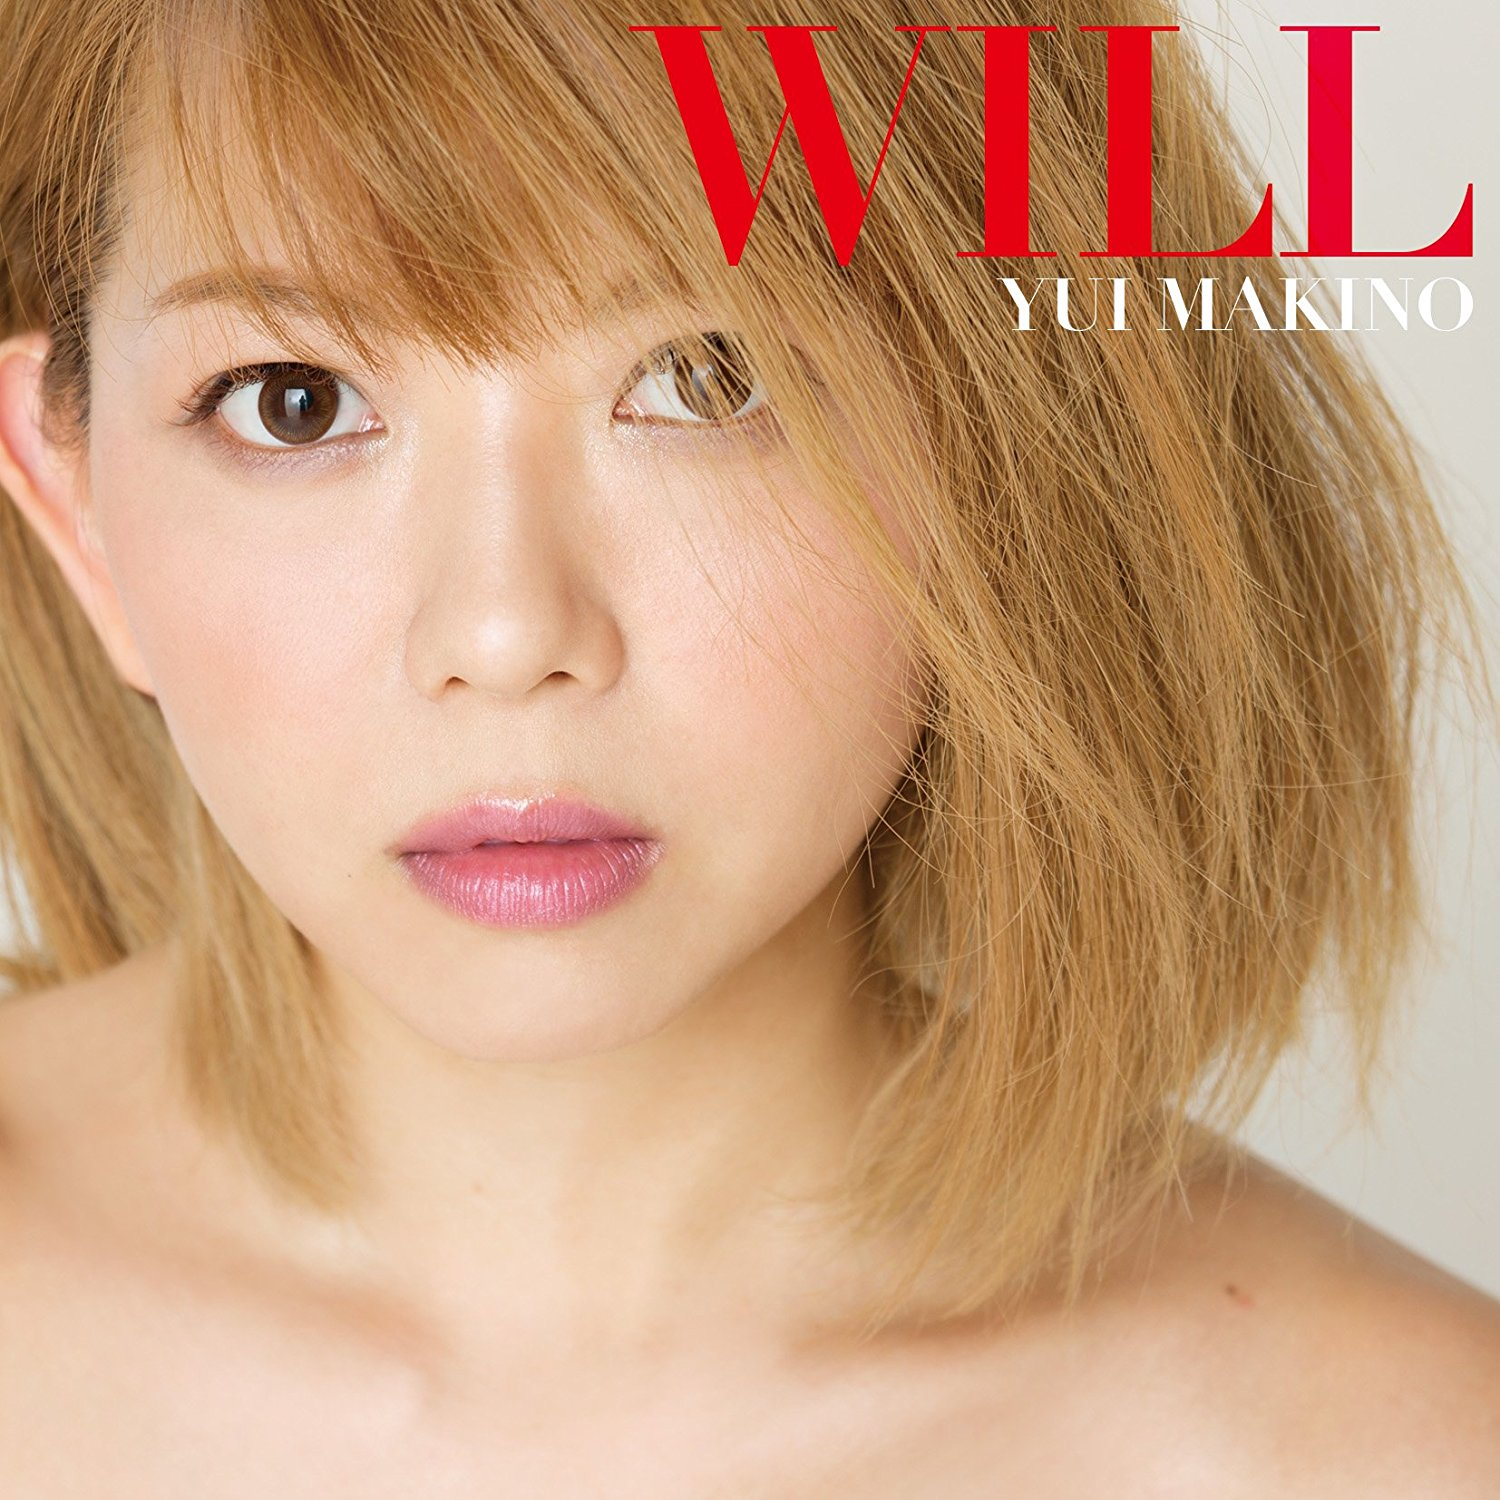 Yui Makino – Will (Album)